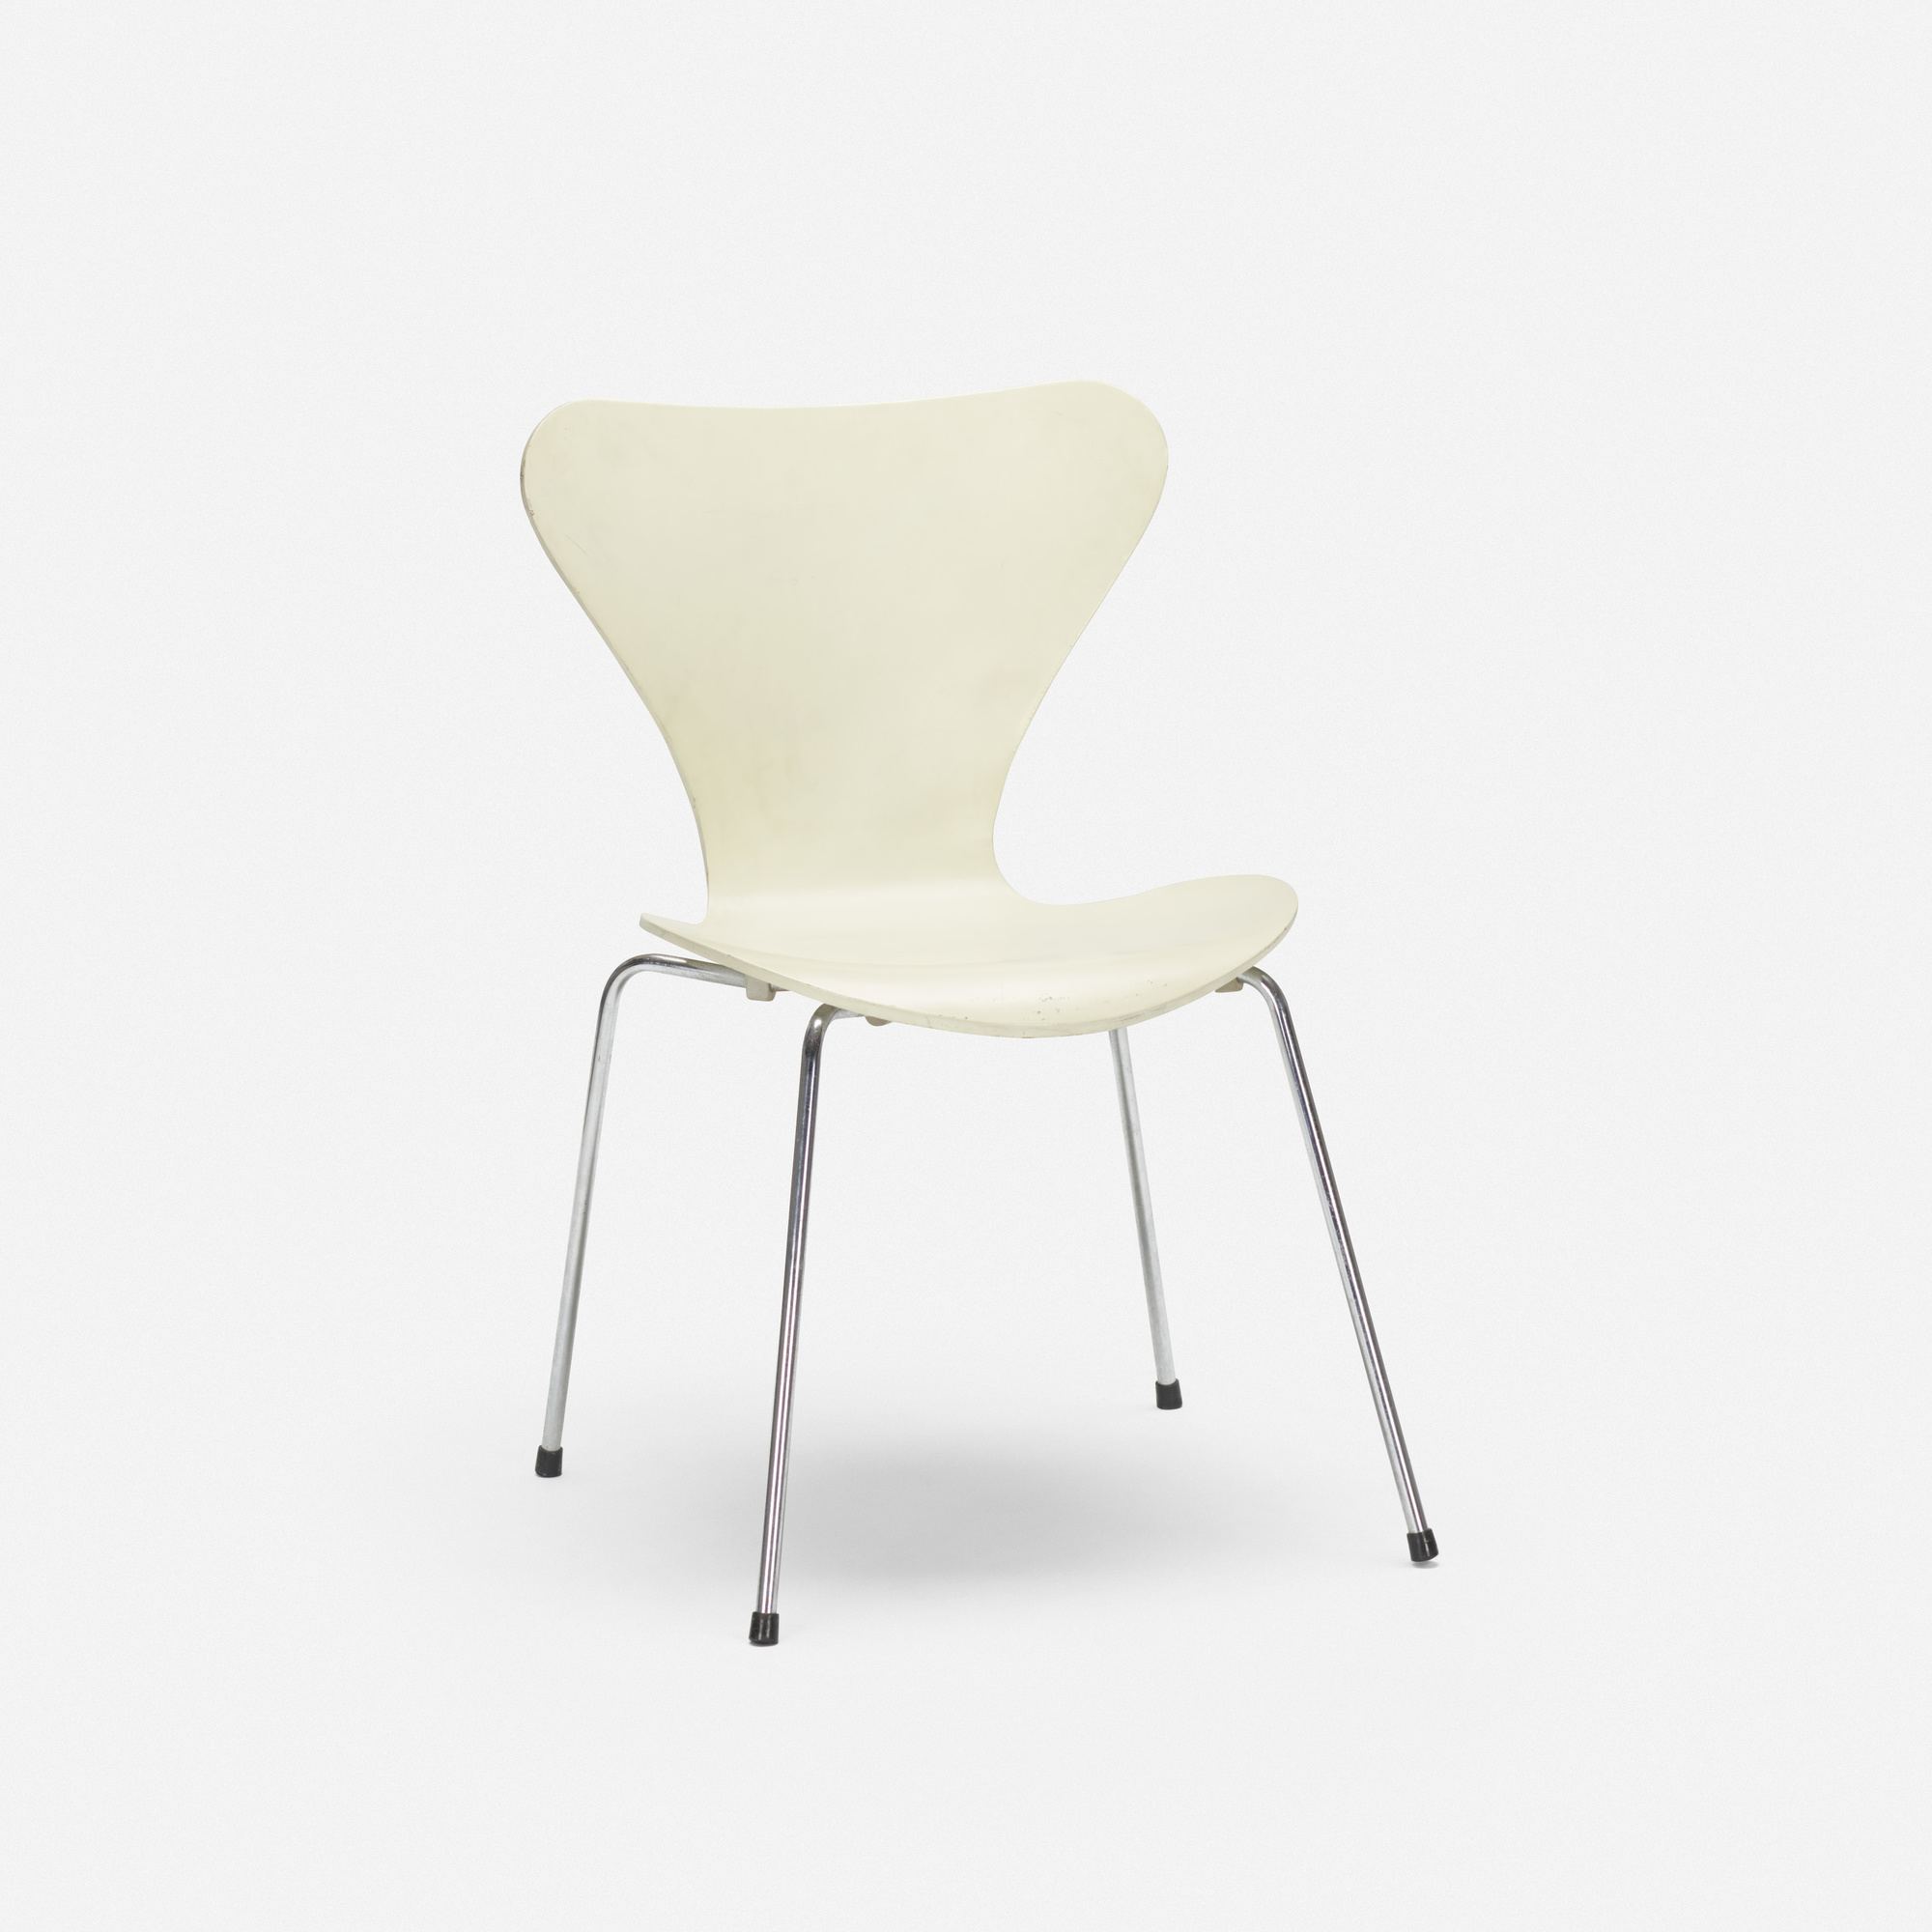 333 ARNE JACOBSEN 3107 Chair